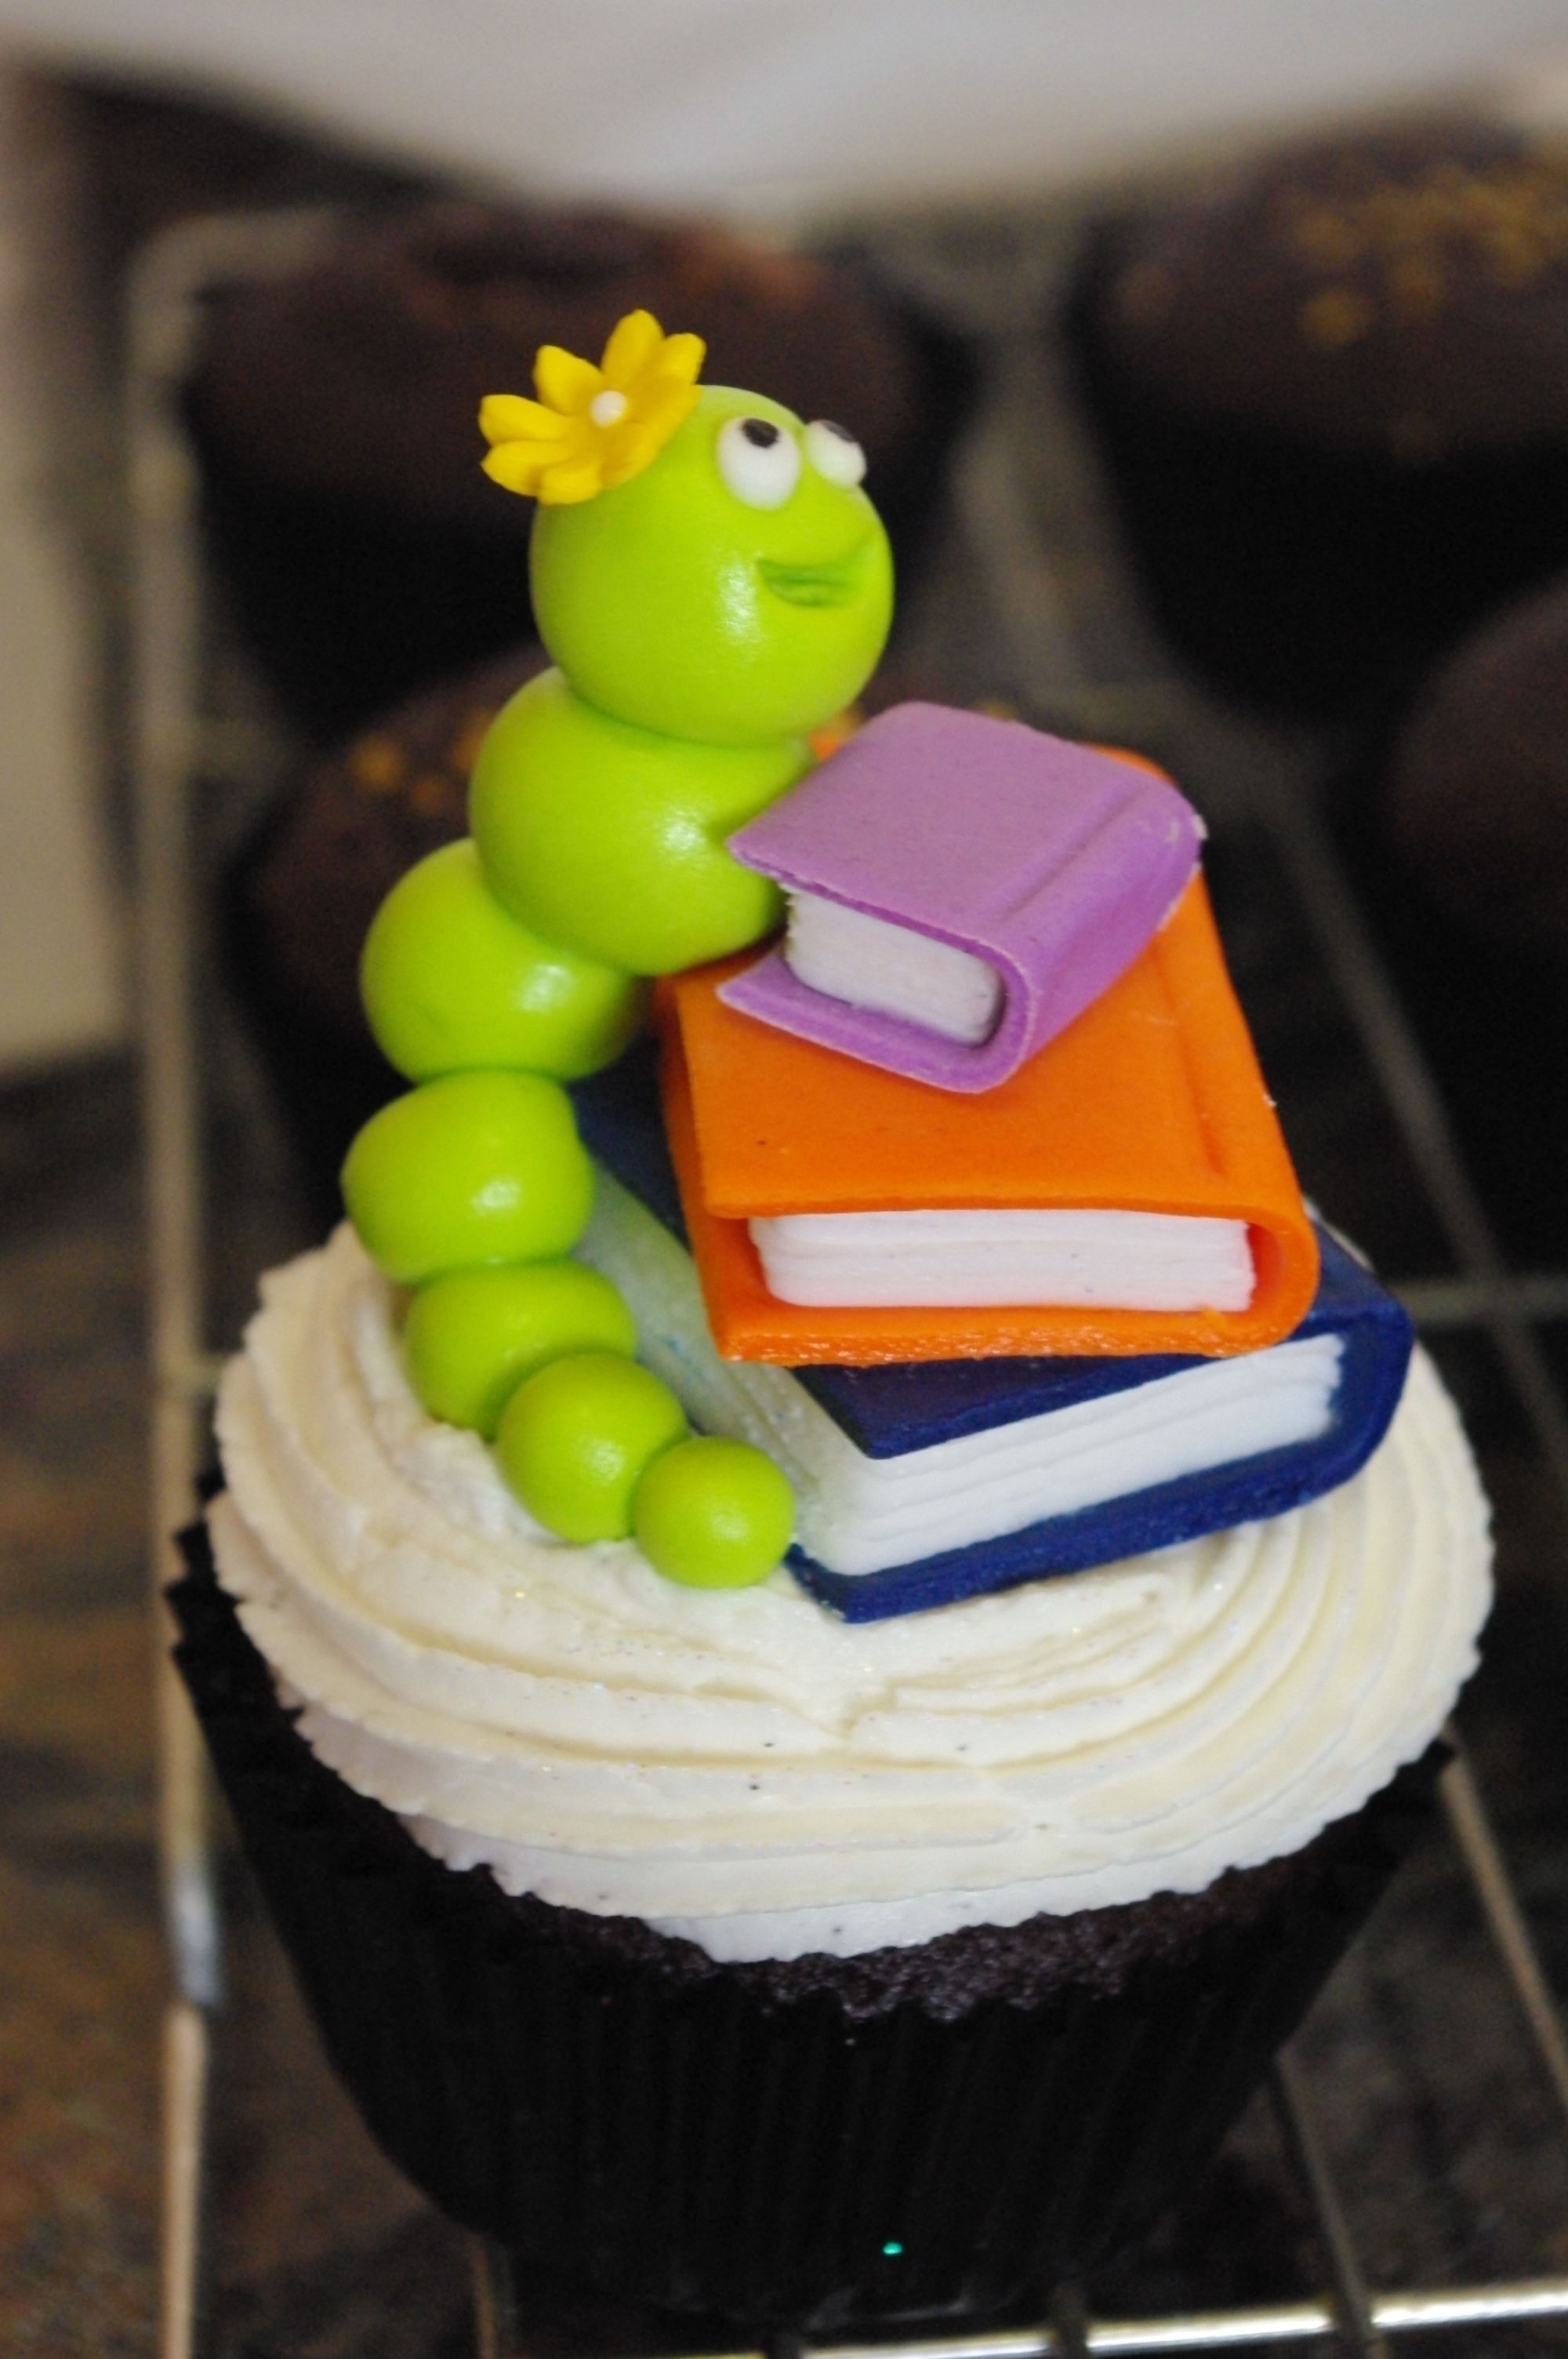 Another Cupcake Gift From Thabang